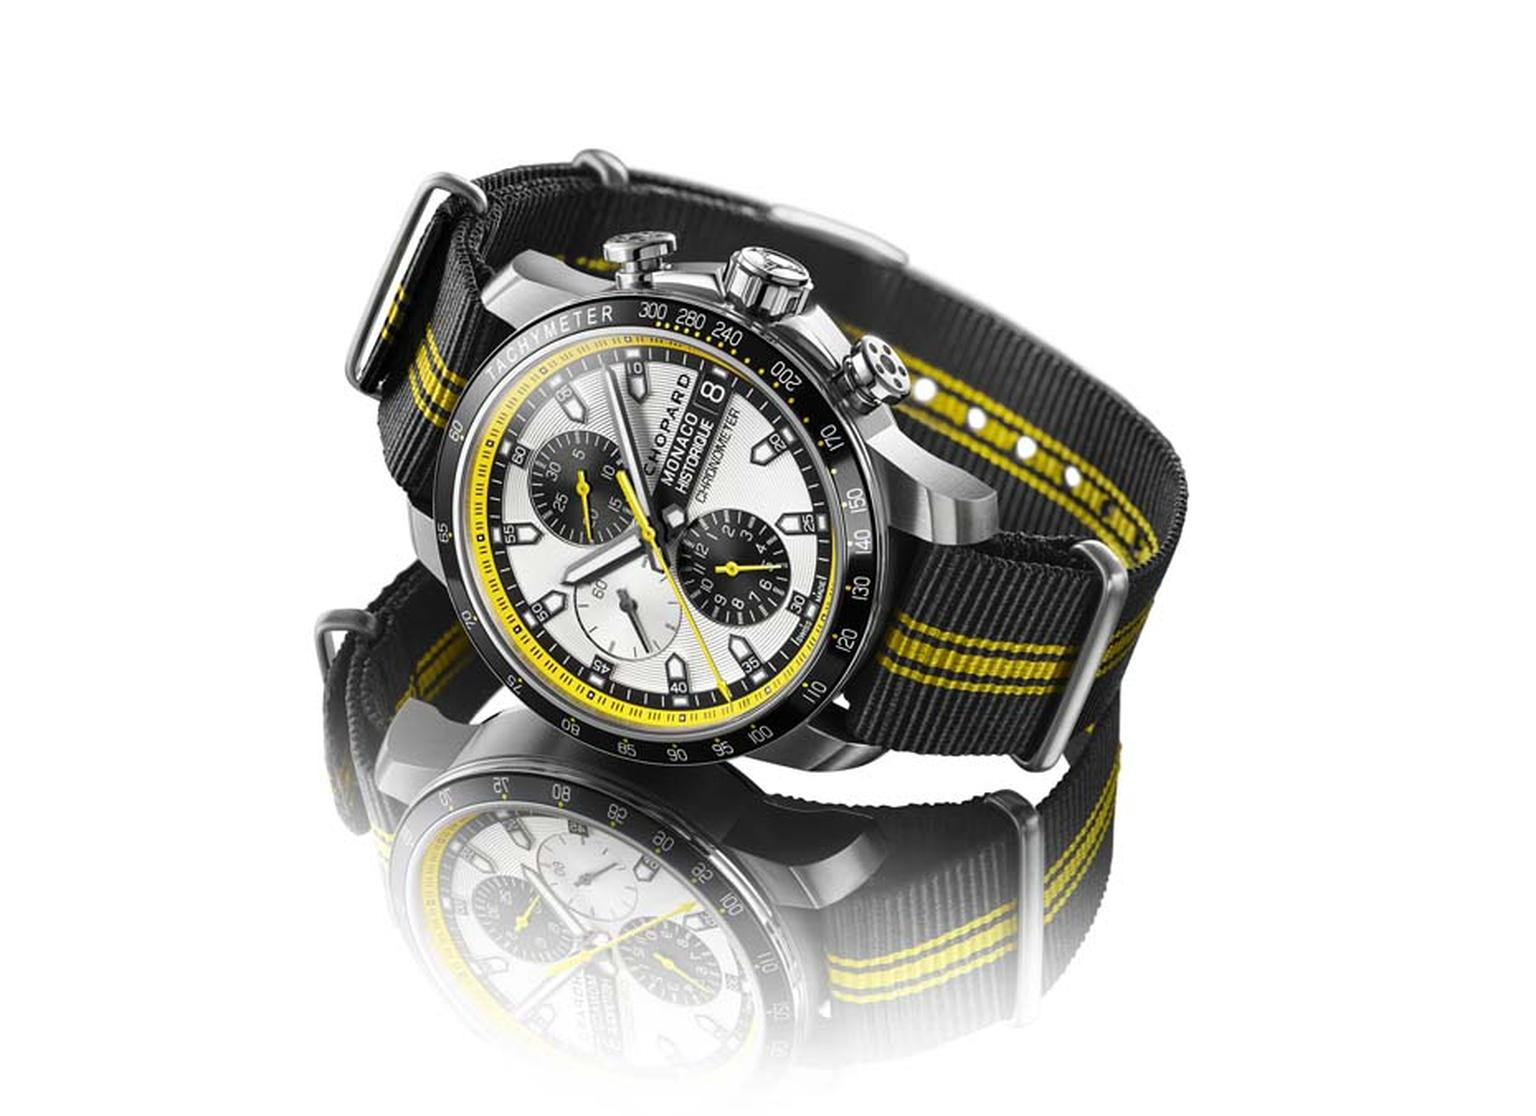 With its yellow and black stripes and NATO strap, Chopard's Grand Prix de Monaco Historique watch has been given an extra dose of raciness for 2014.